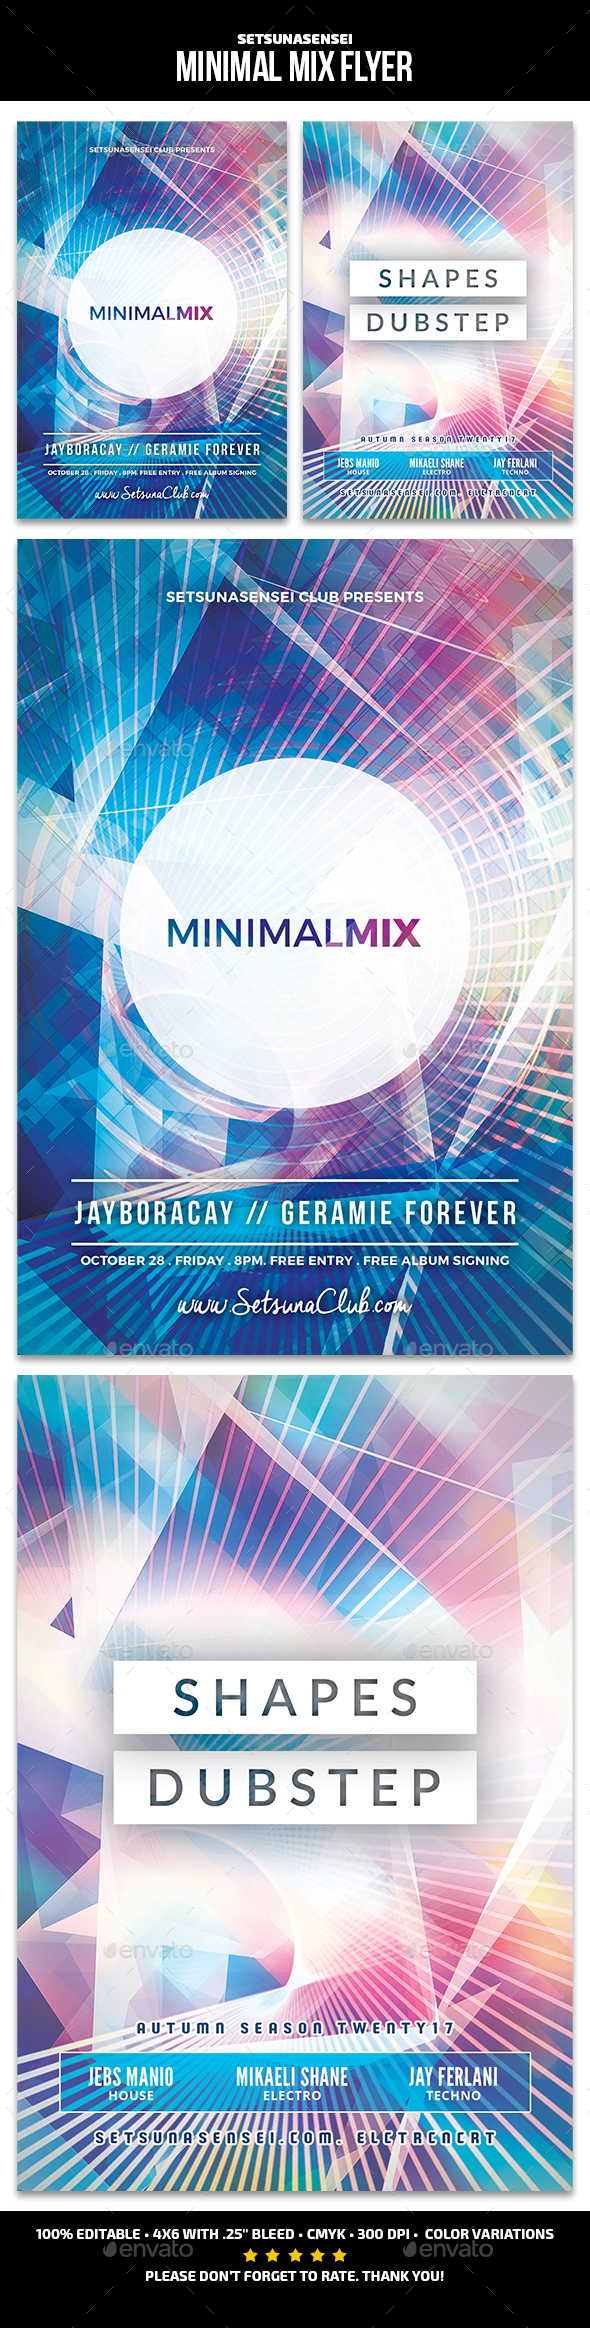 Minimal Mix Flyer - Clubs & Parties Events